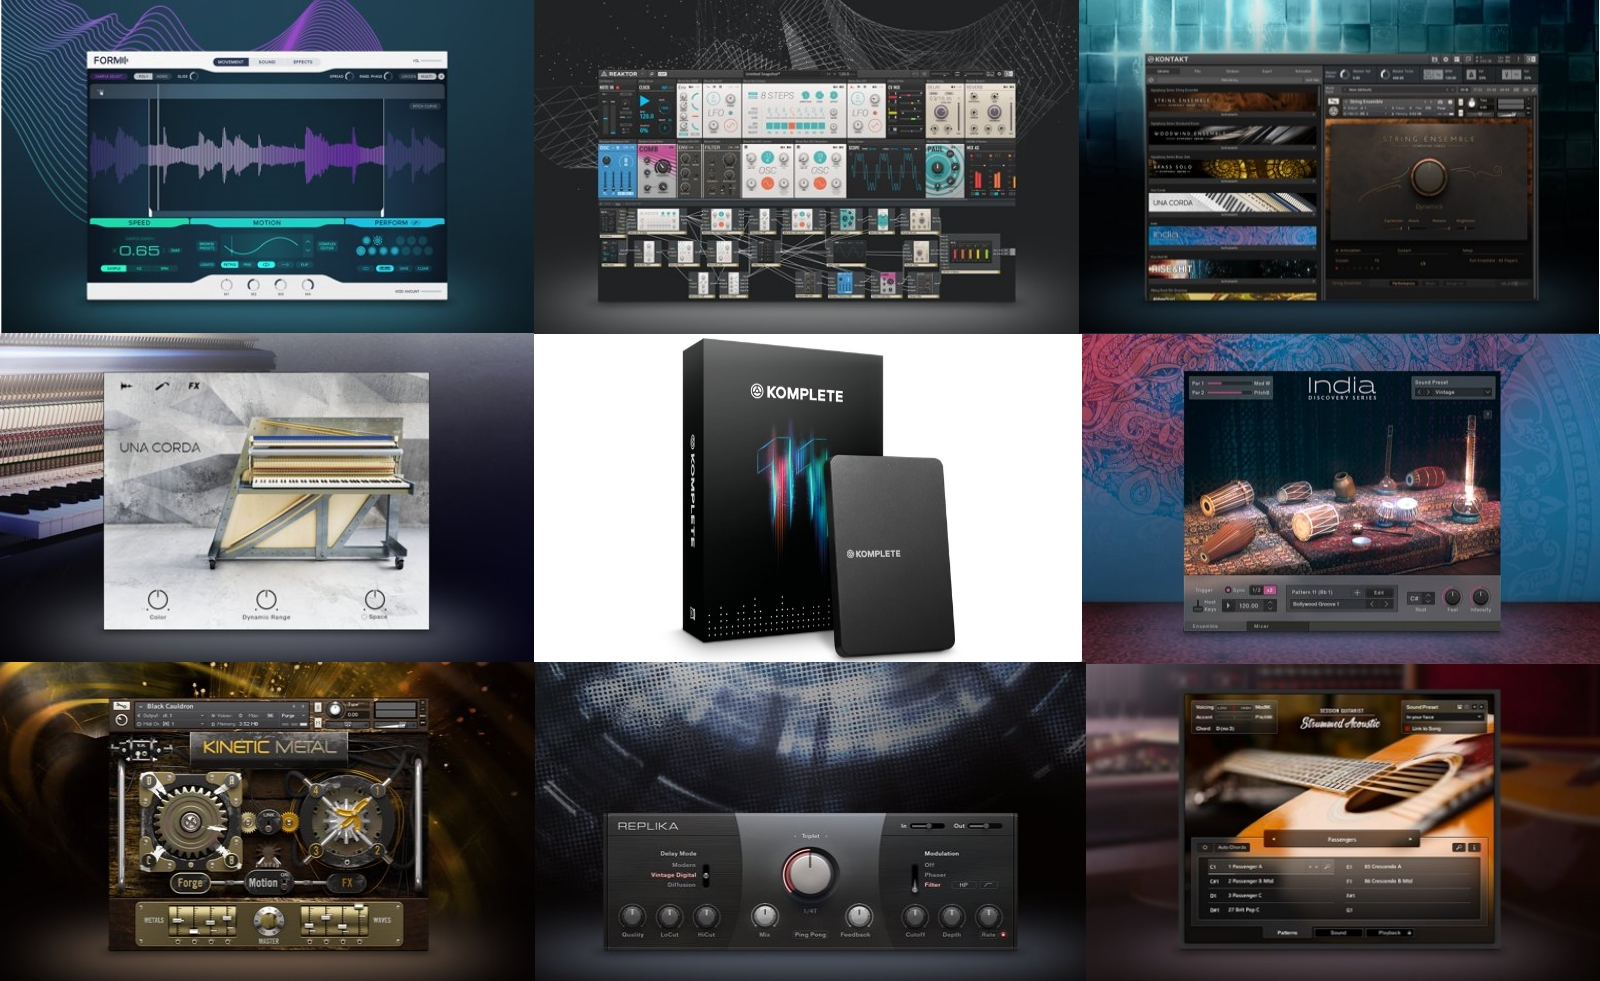 music production DAW software Native Instruments producers